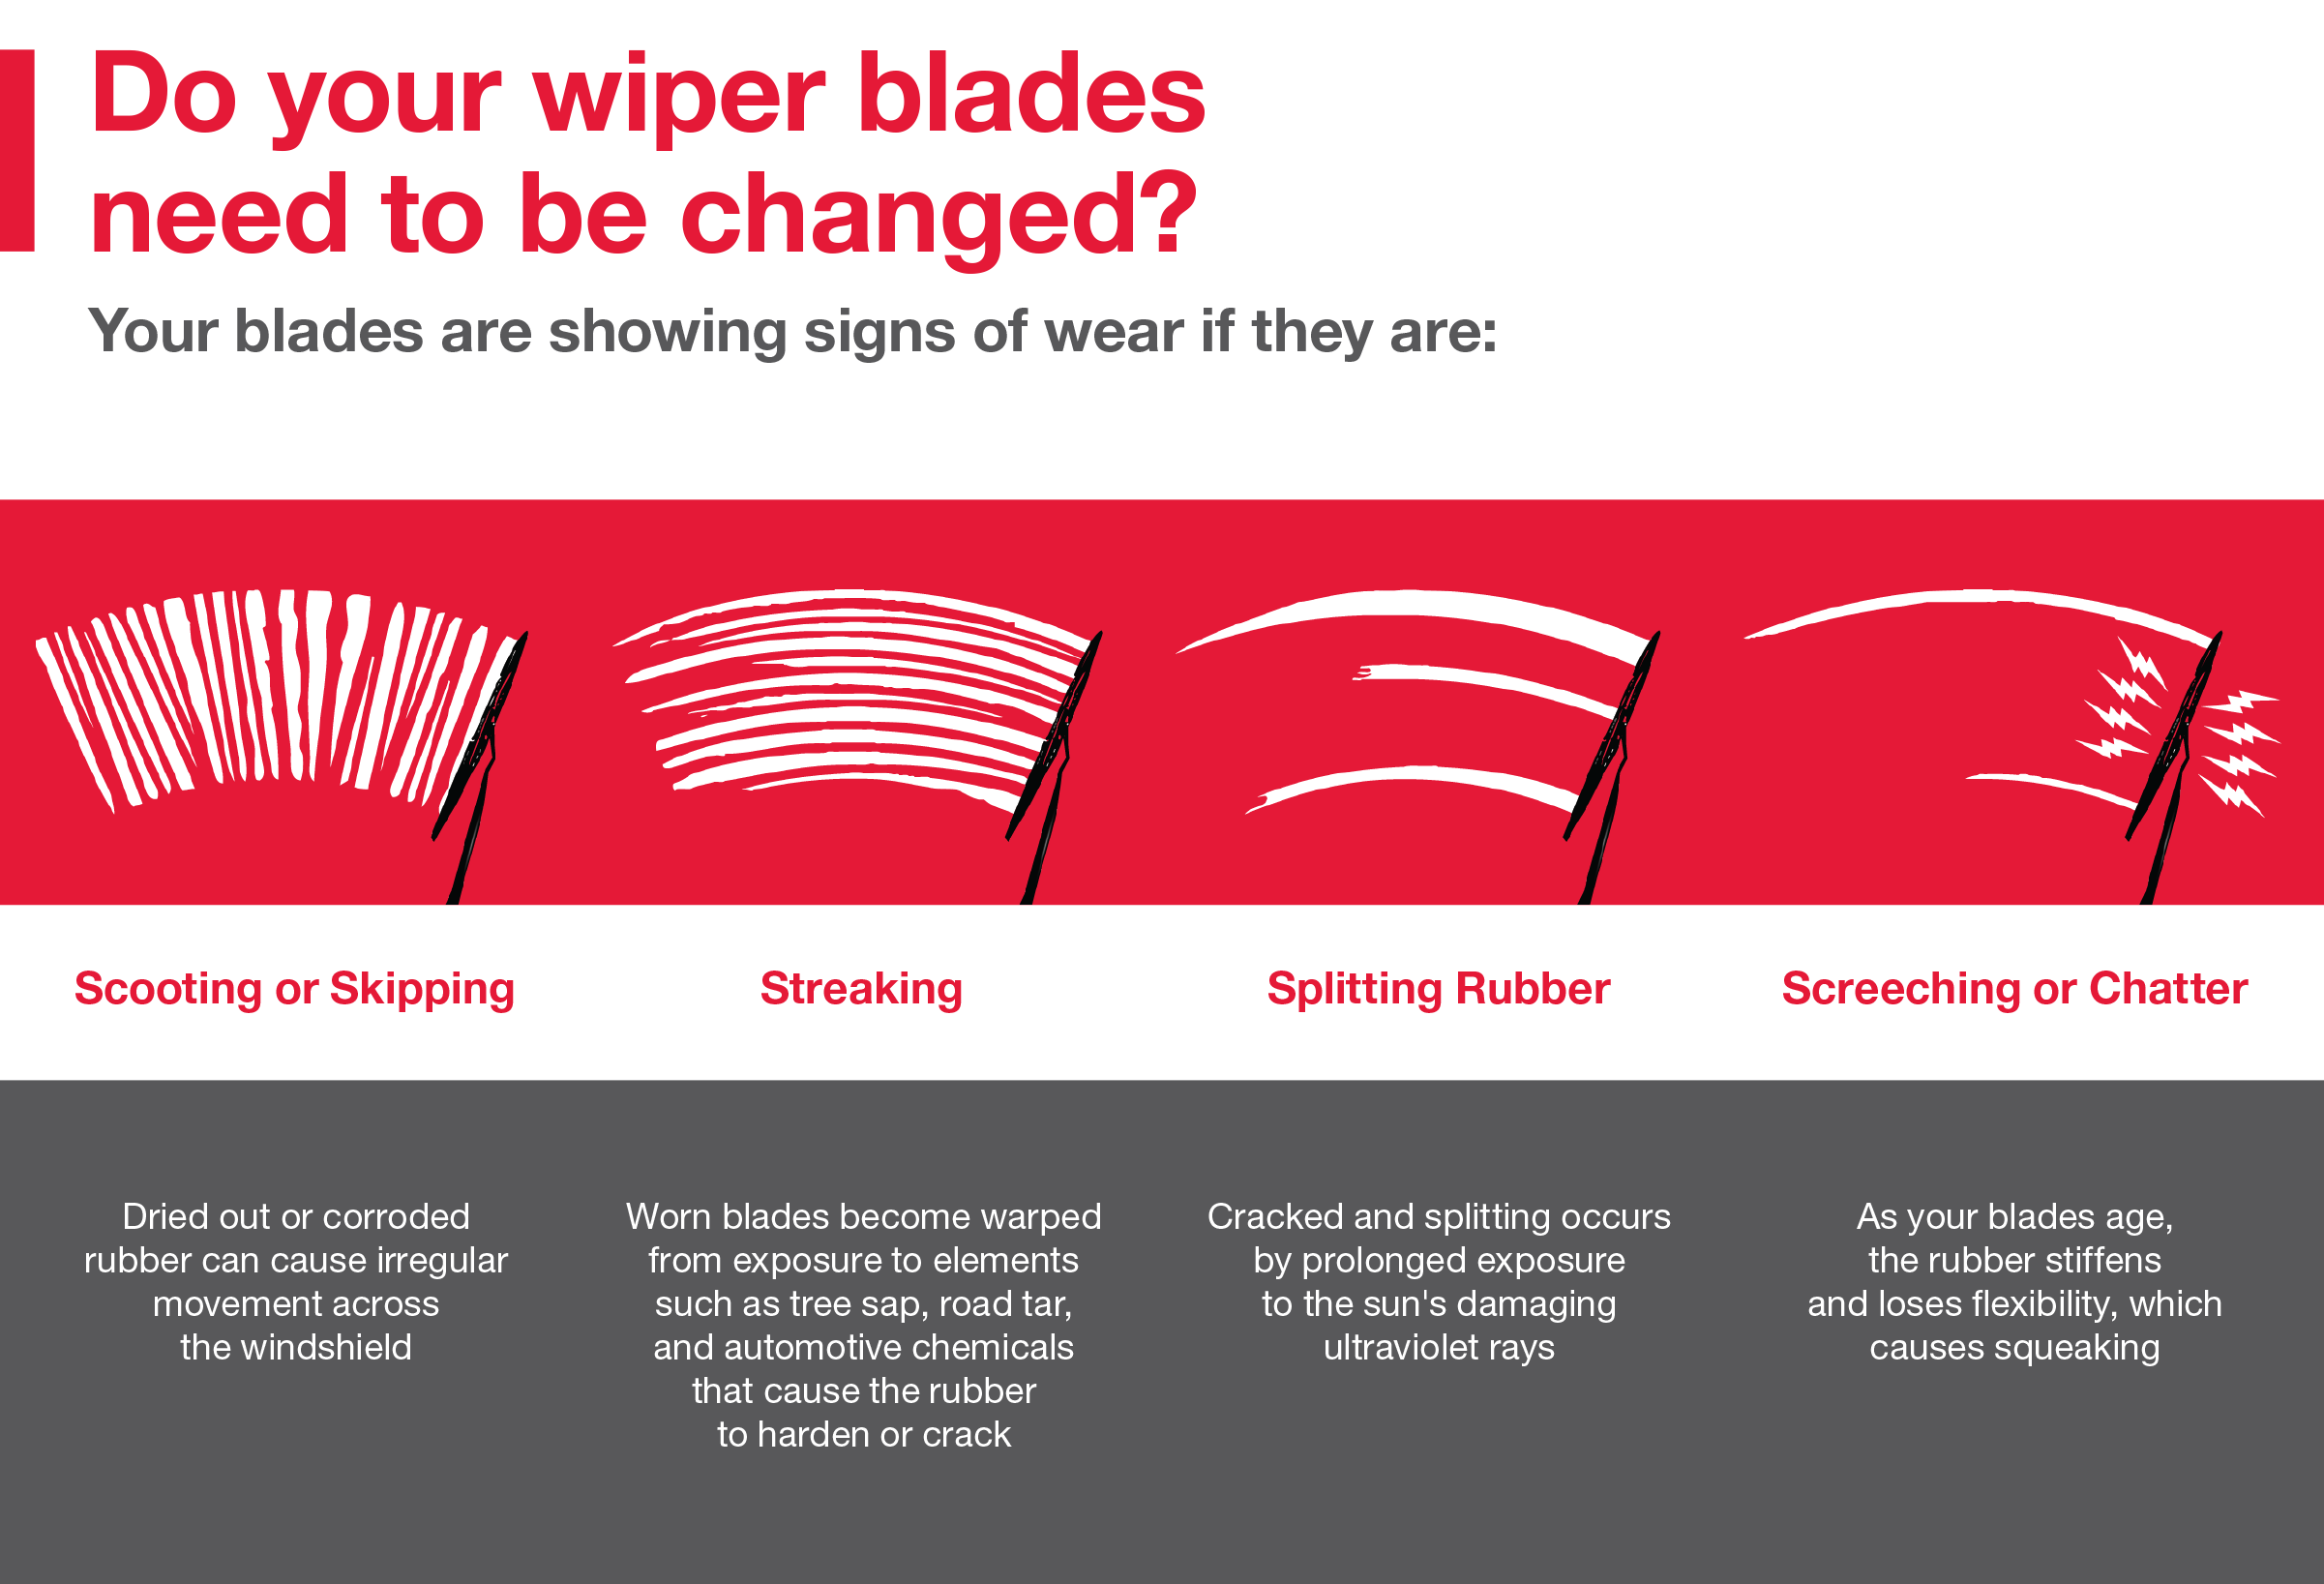 Do your wiper blades need to be changed? Call your local dealer for more info: 866-436-5356